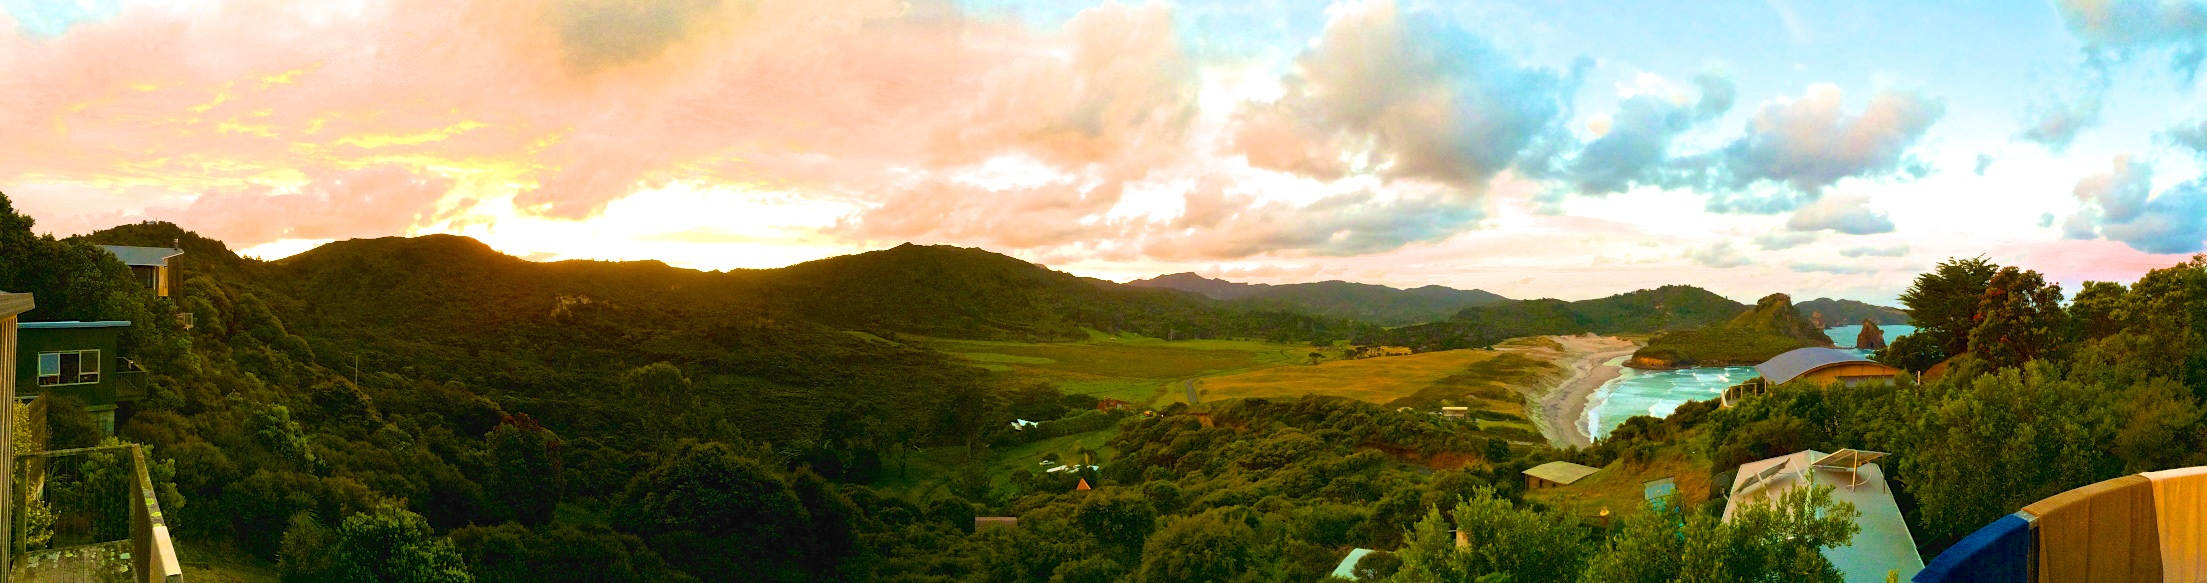 The place Icall home at this time of the year with my family, Awana in Great Barrier Island (Aotea) in NZ